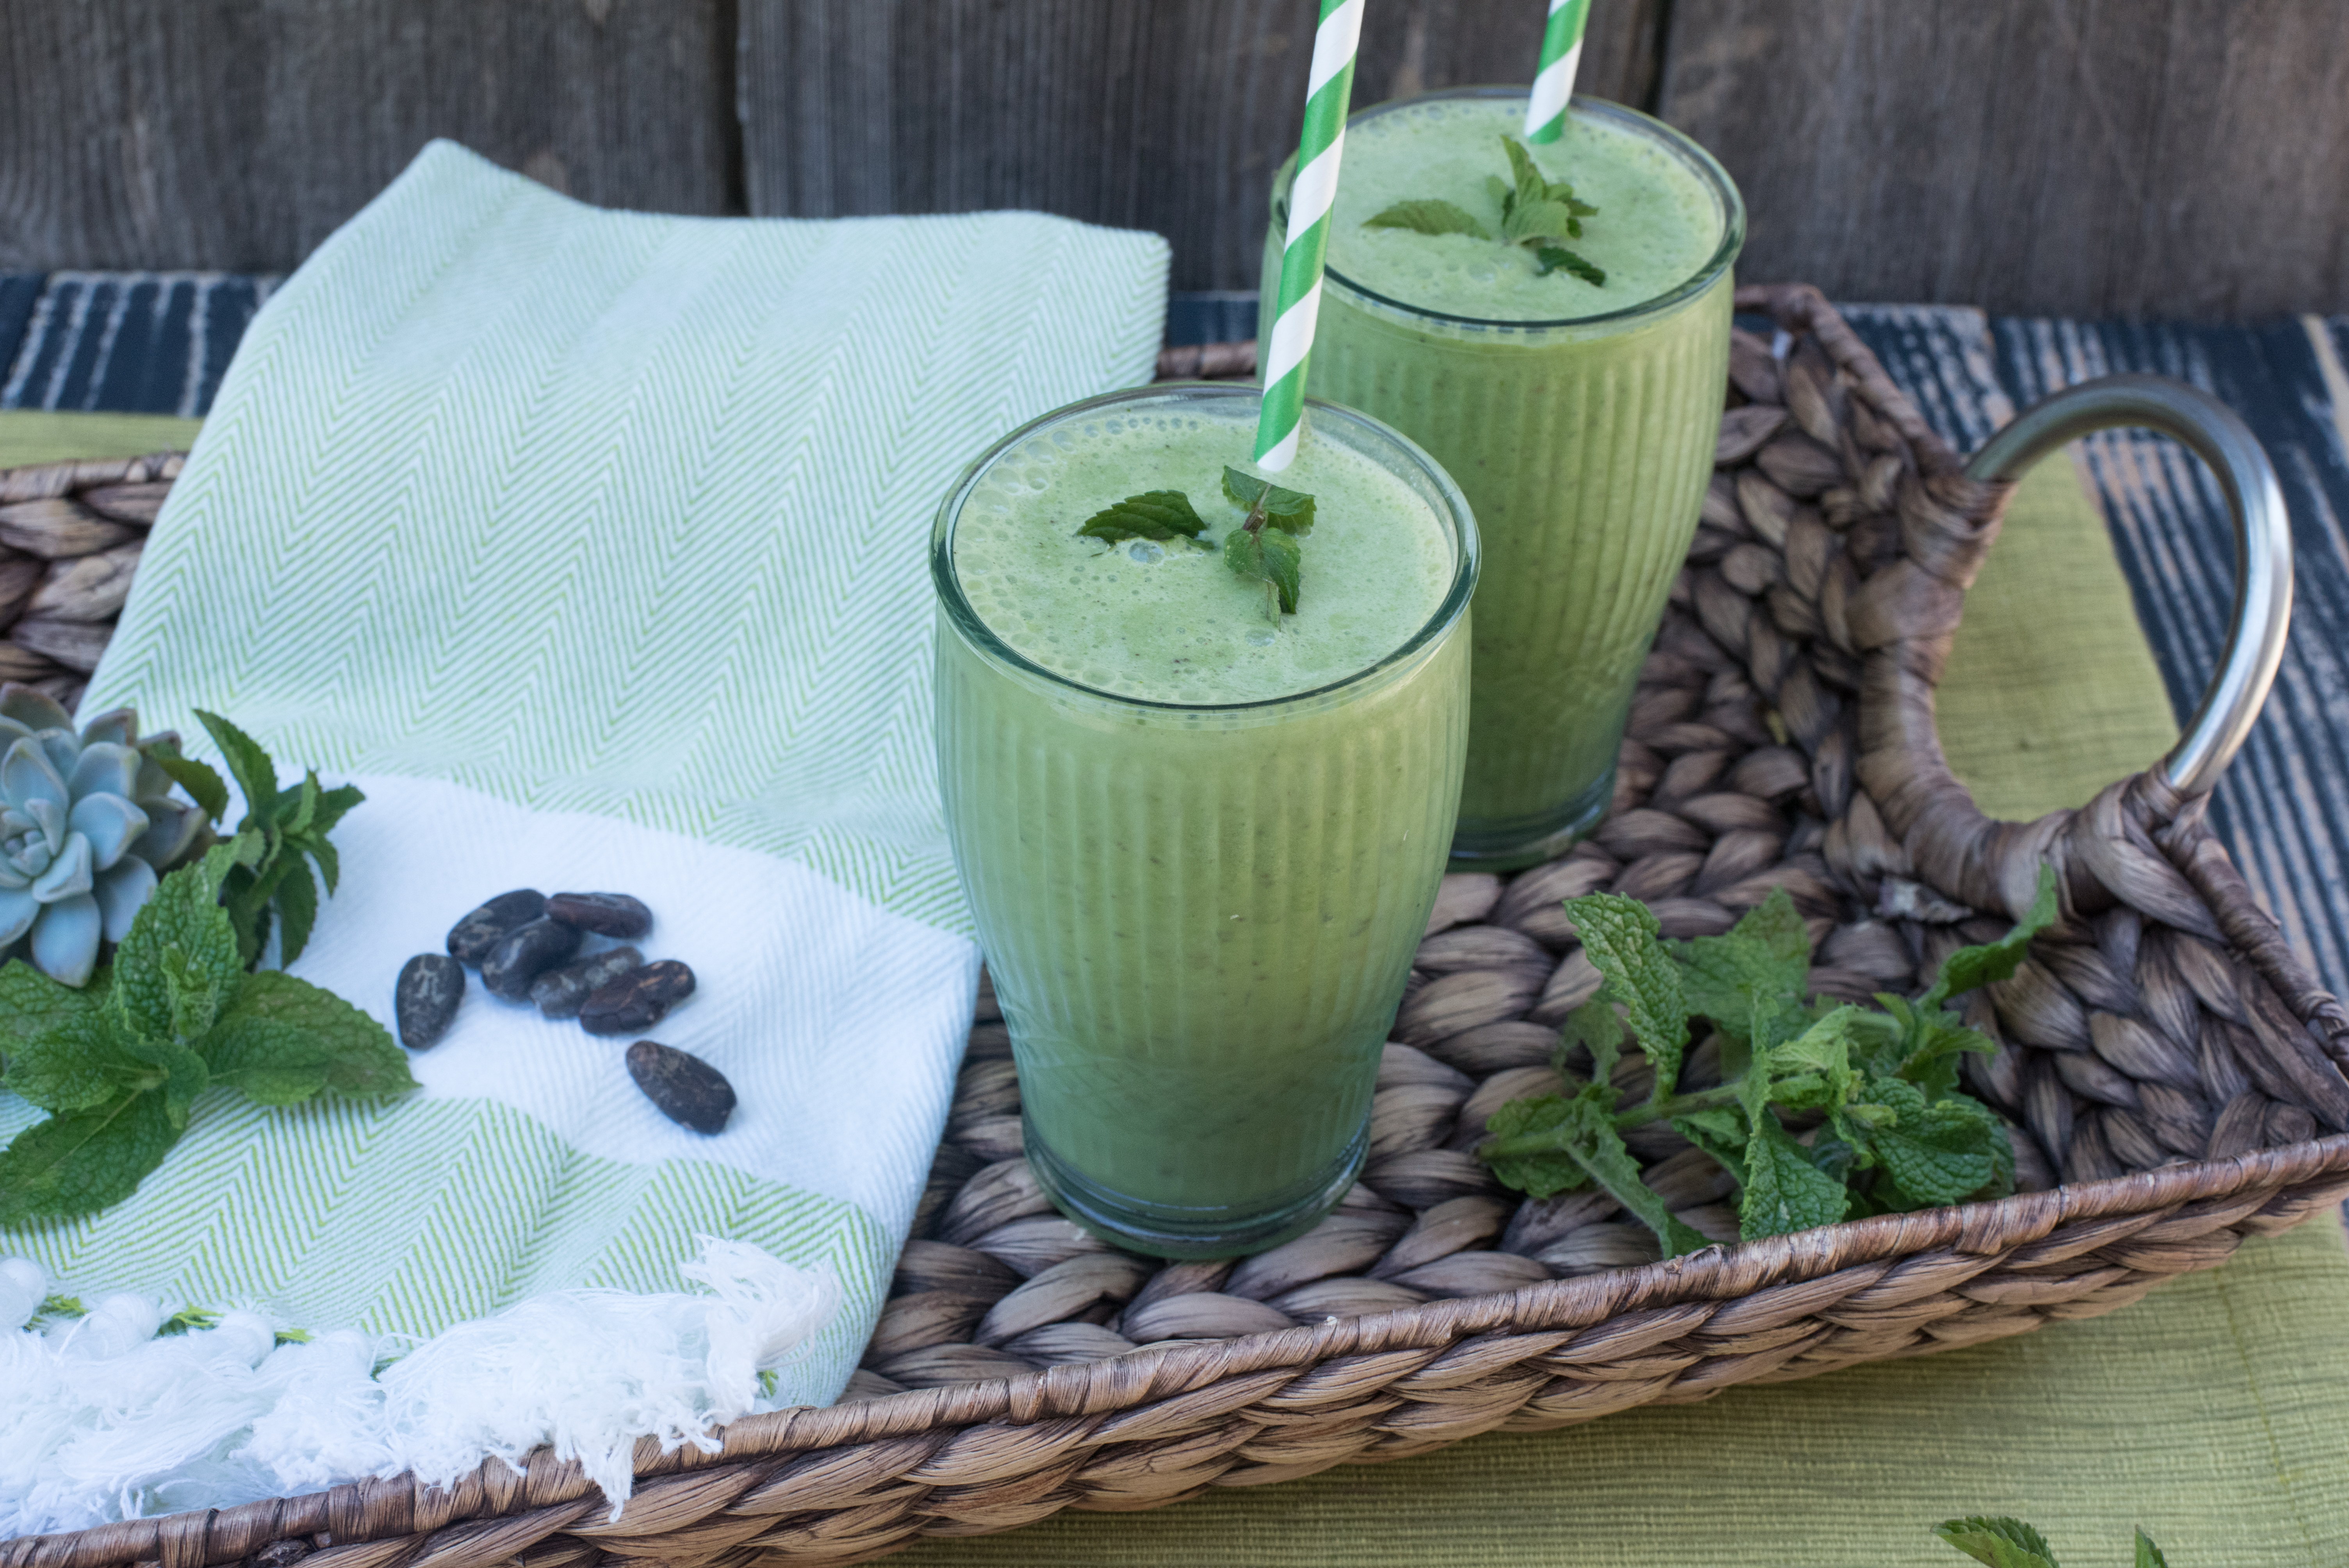 Chocolate Mint Kale Refresher